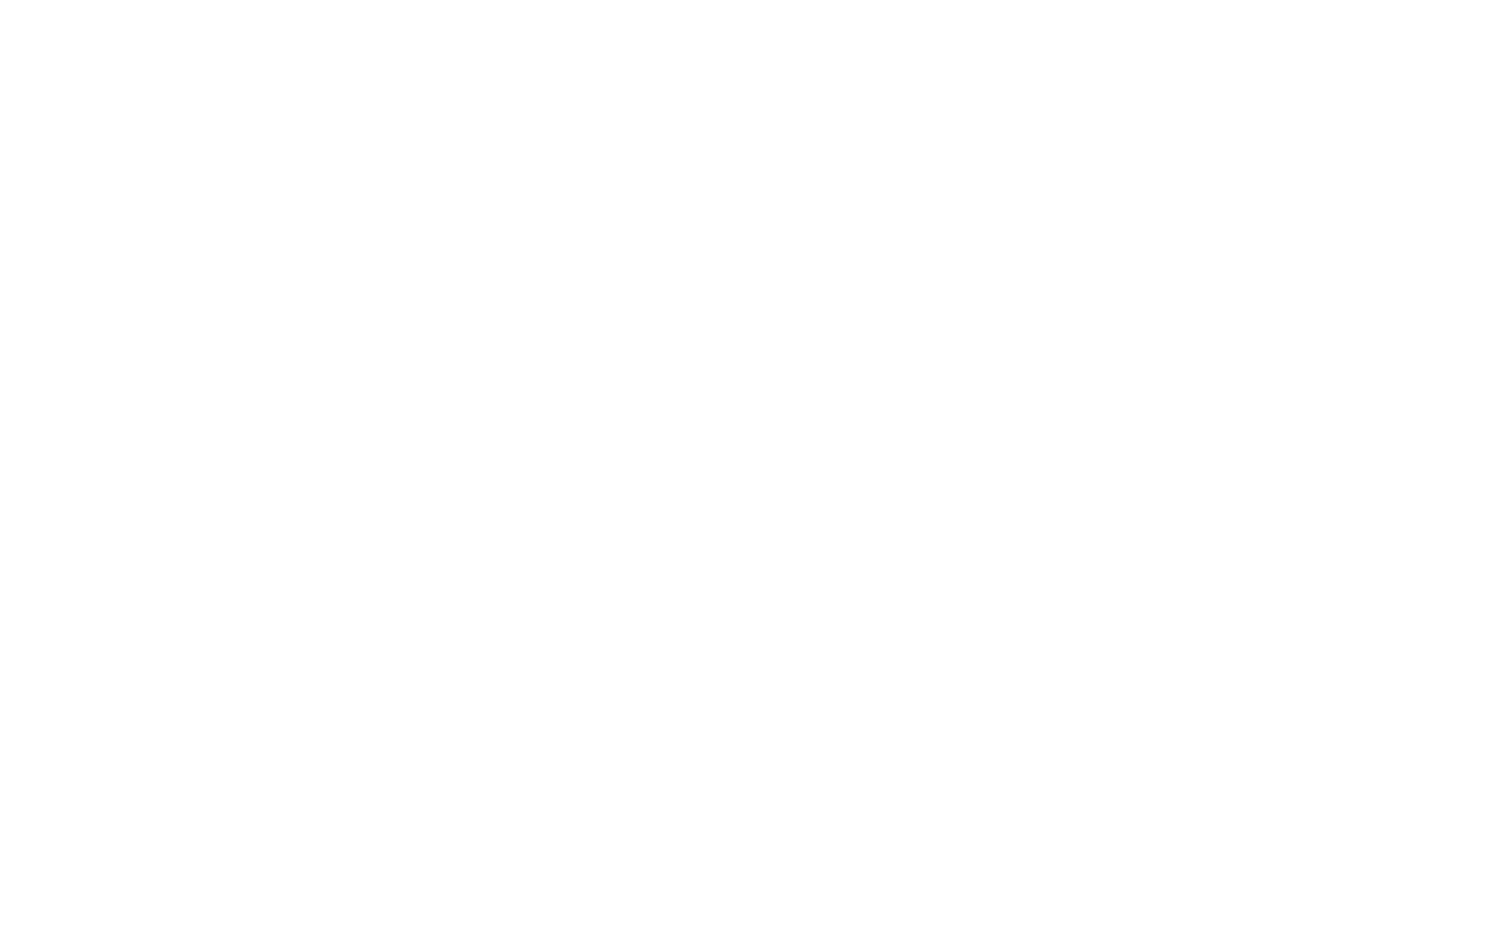 Canyon Food & Brew Co.